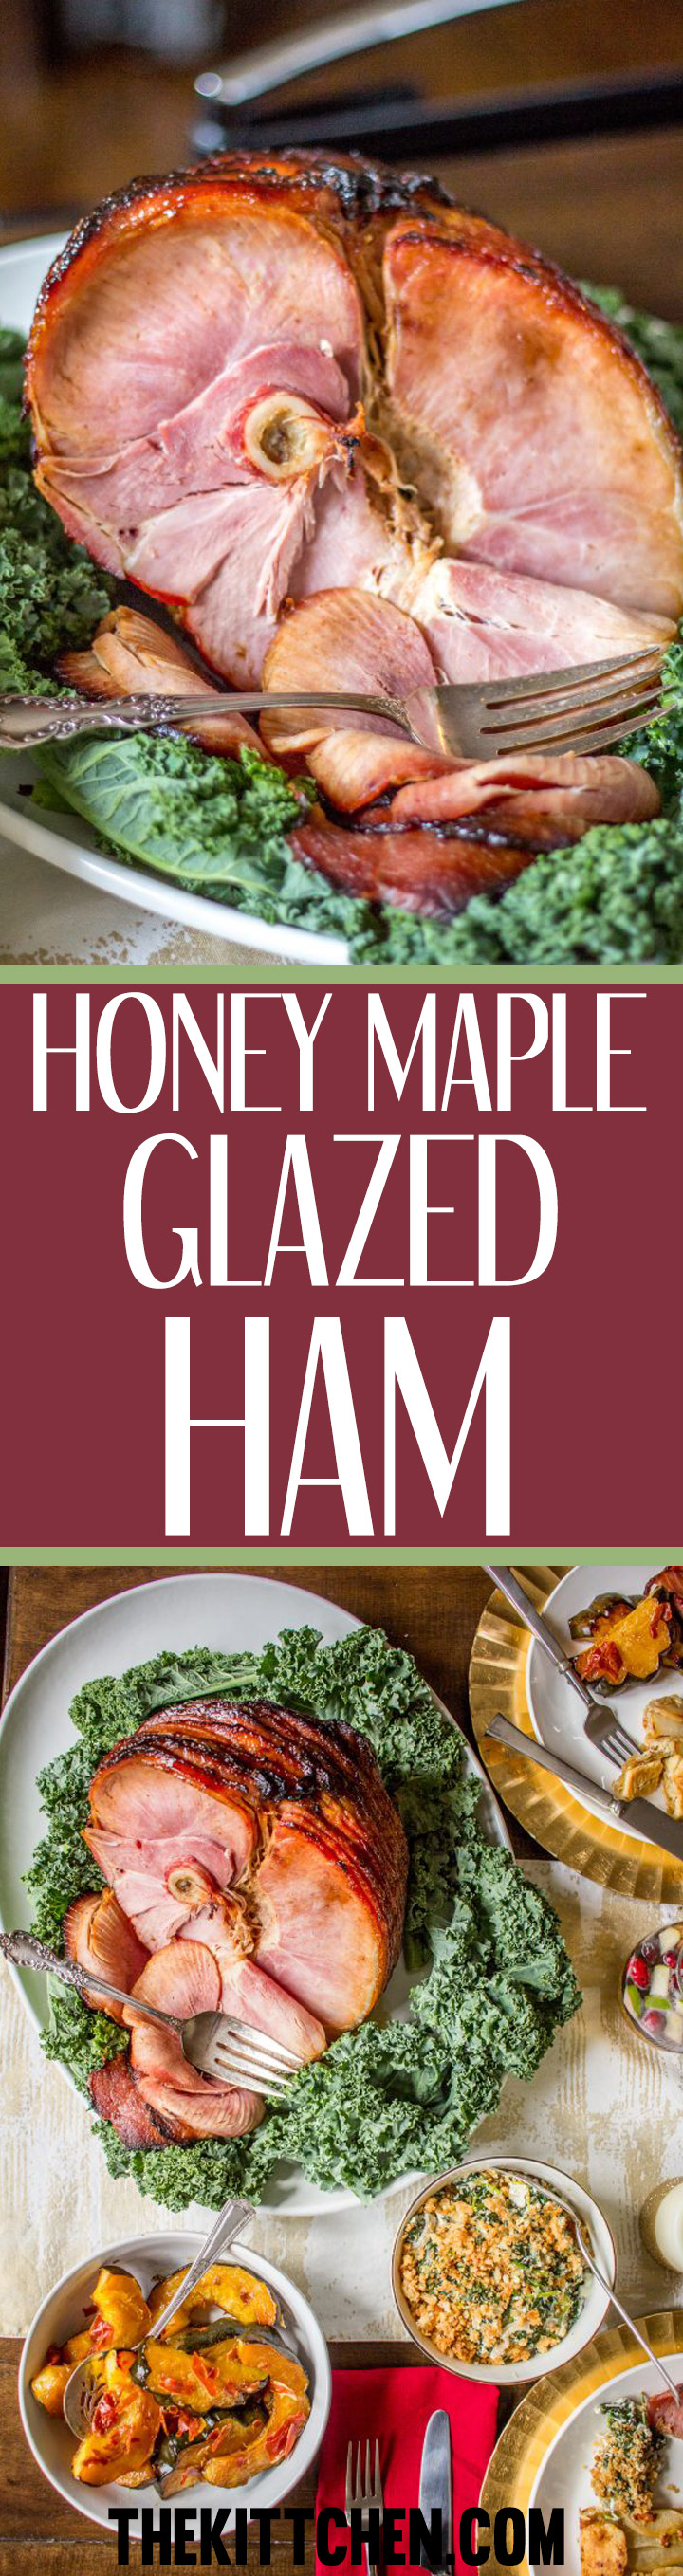 This Honey Maple Glazed Ham is topped with a delicious homemade glaze that is made by mixing up seven ingredients you probably have in your pantry